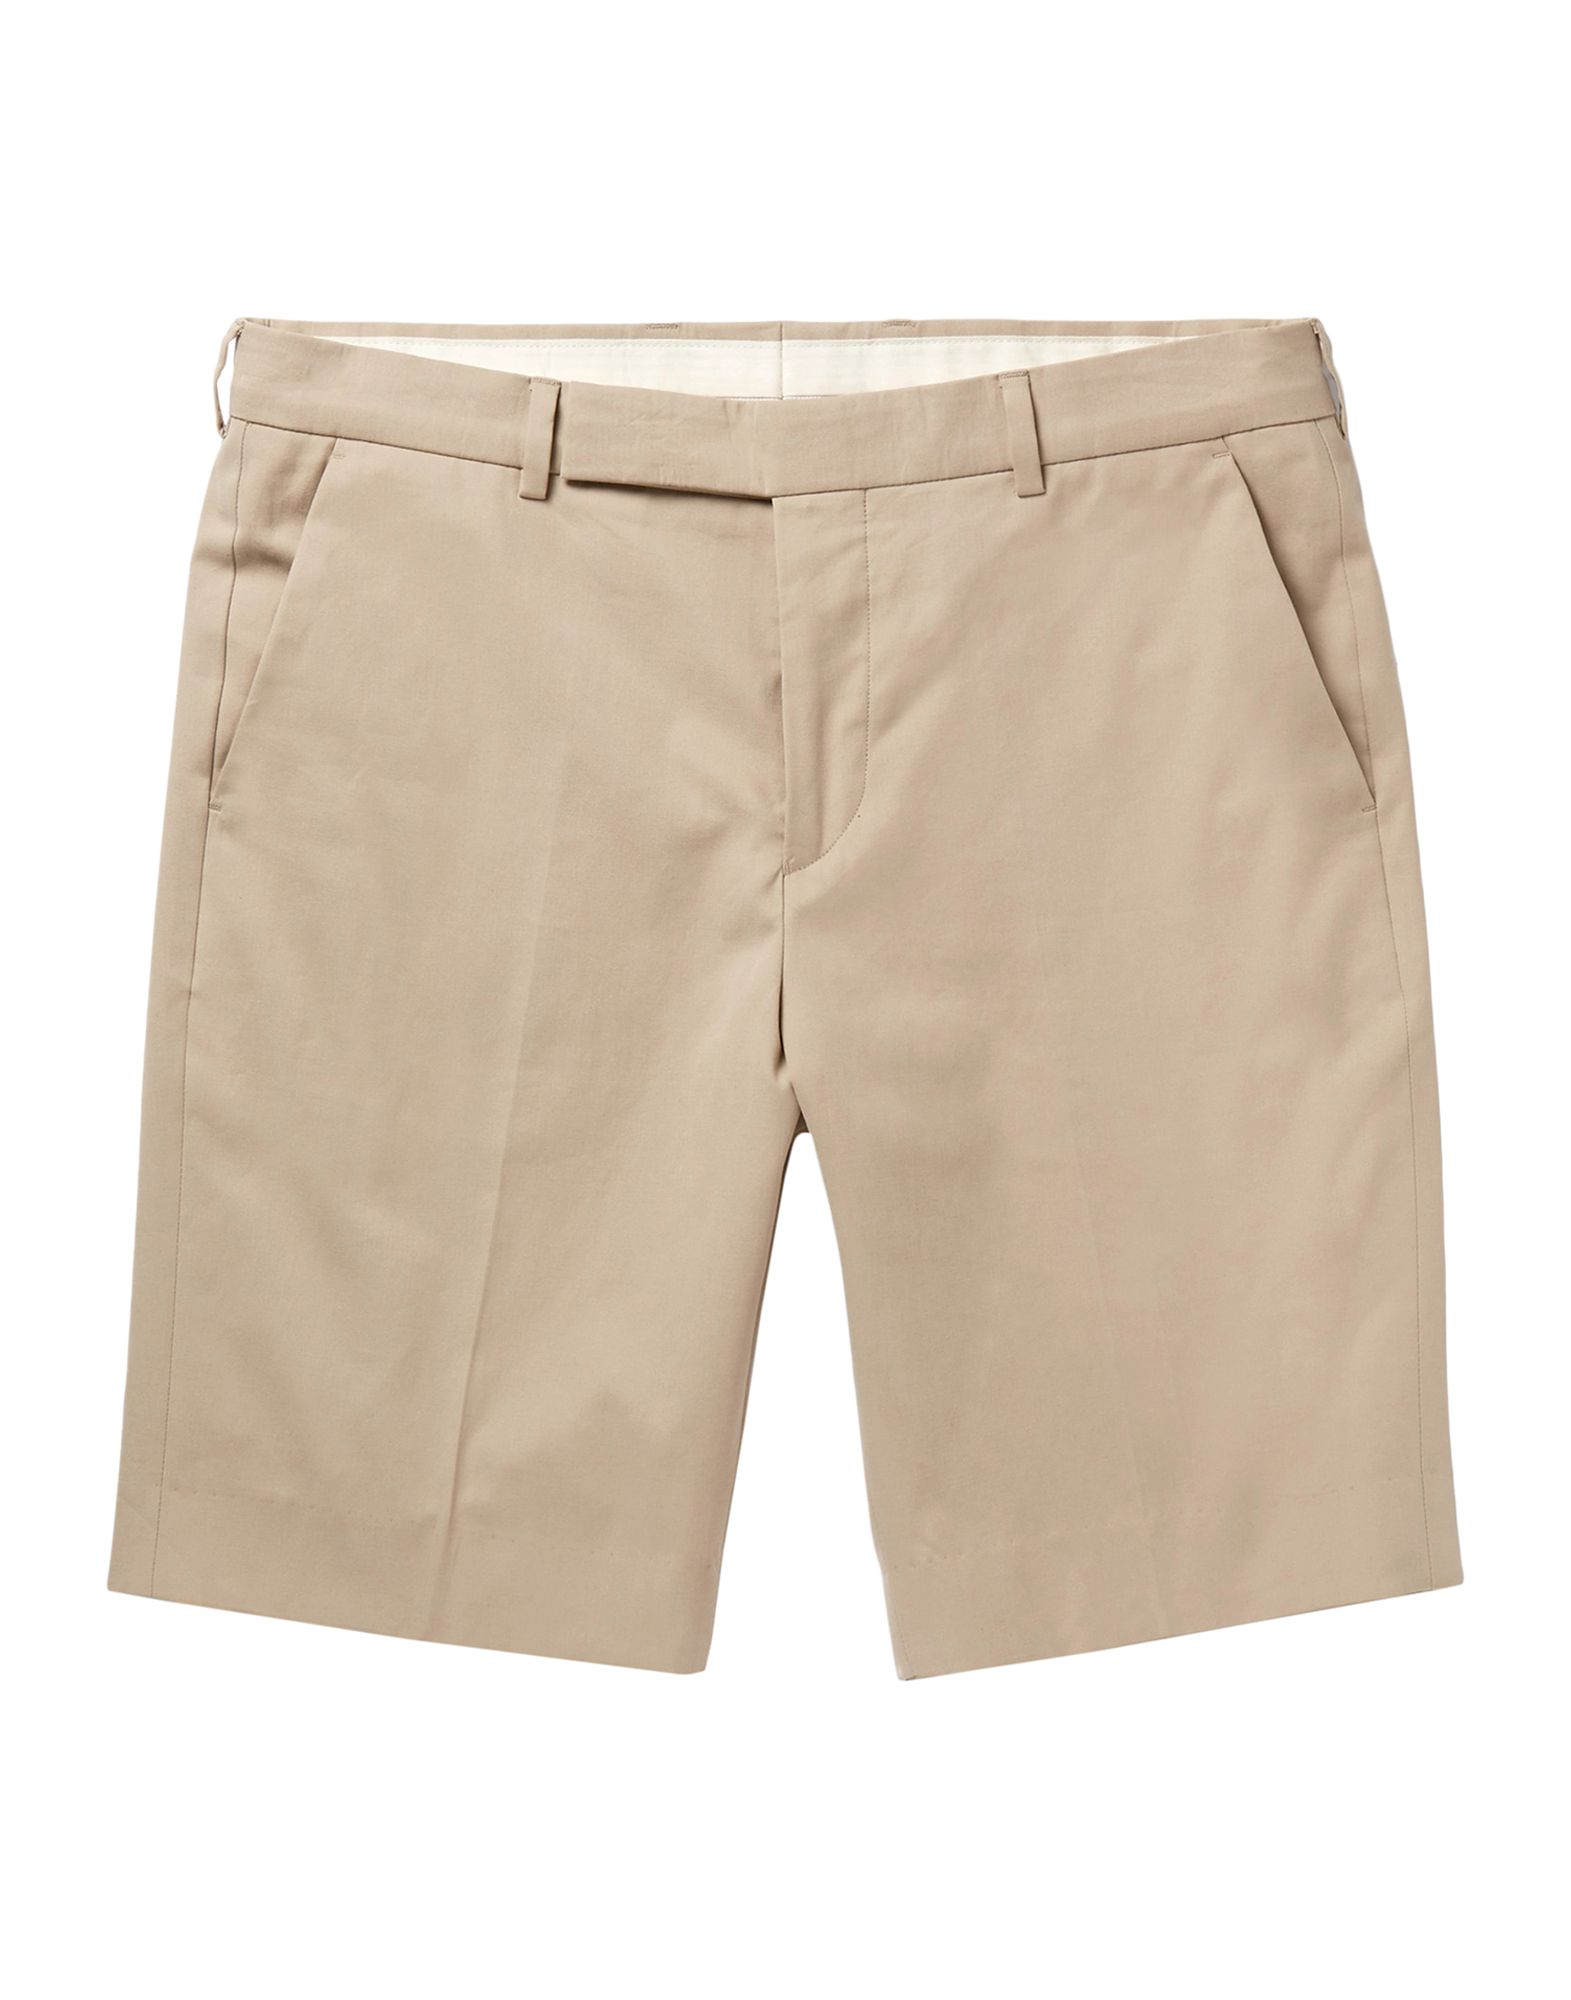 PAUL SMITH | PAUL SMITH Bermudas | Goxip